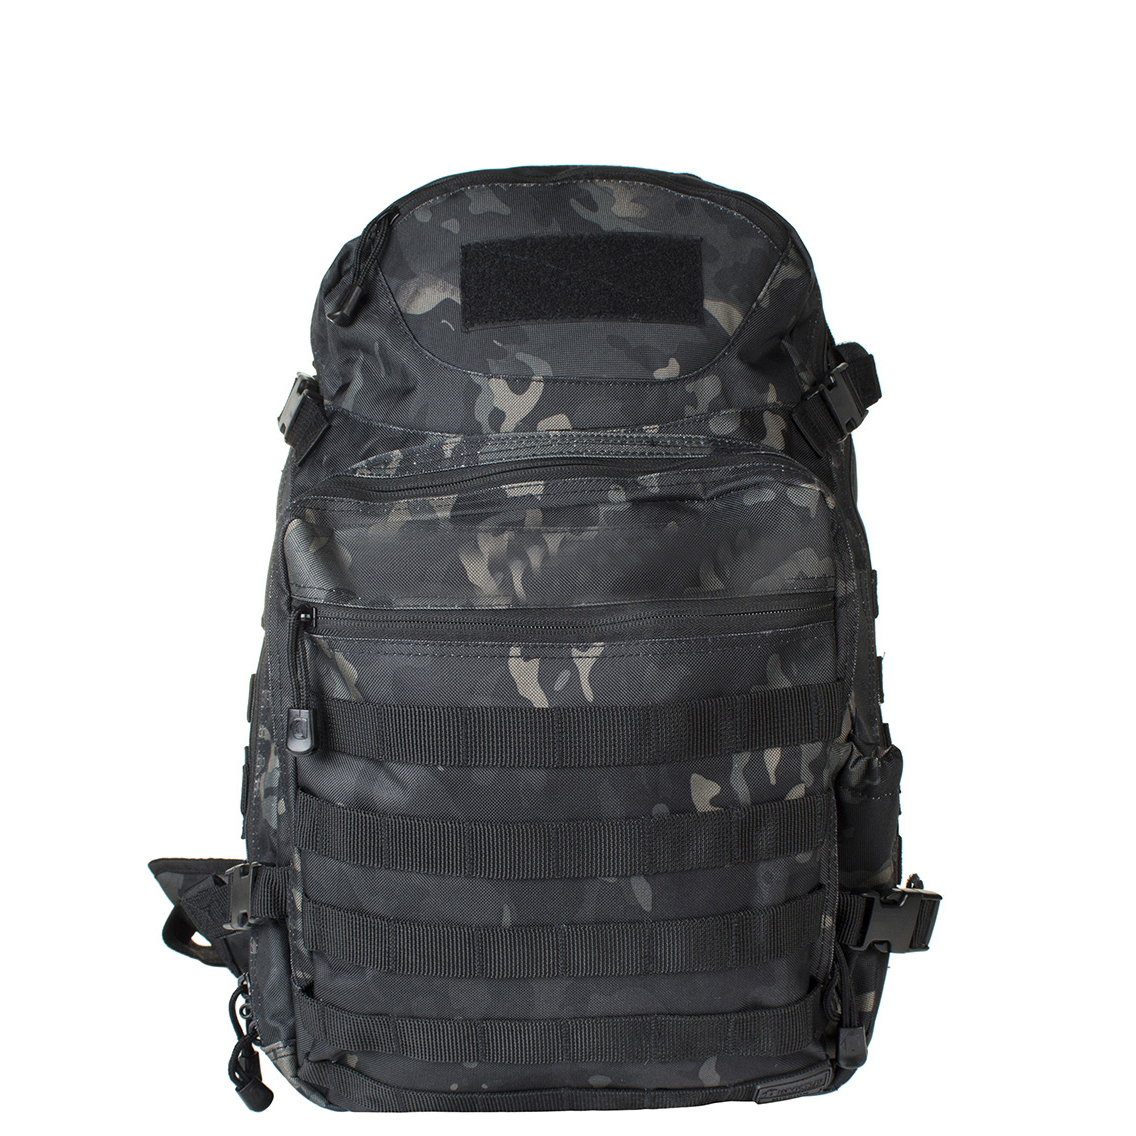 MOCHILA MISSION  - CAMUFLADO MULTICAN BLACK